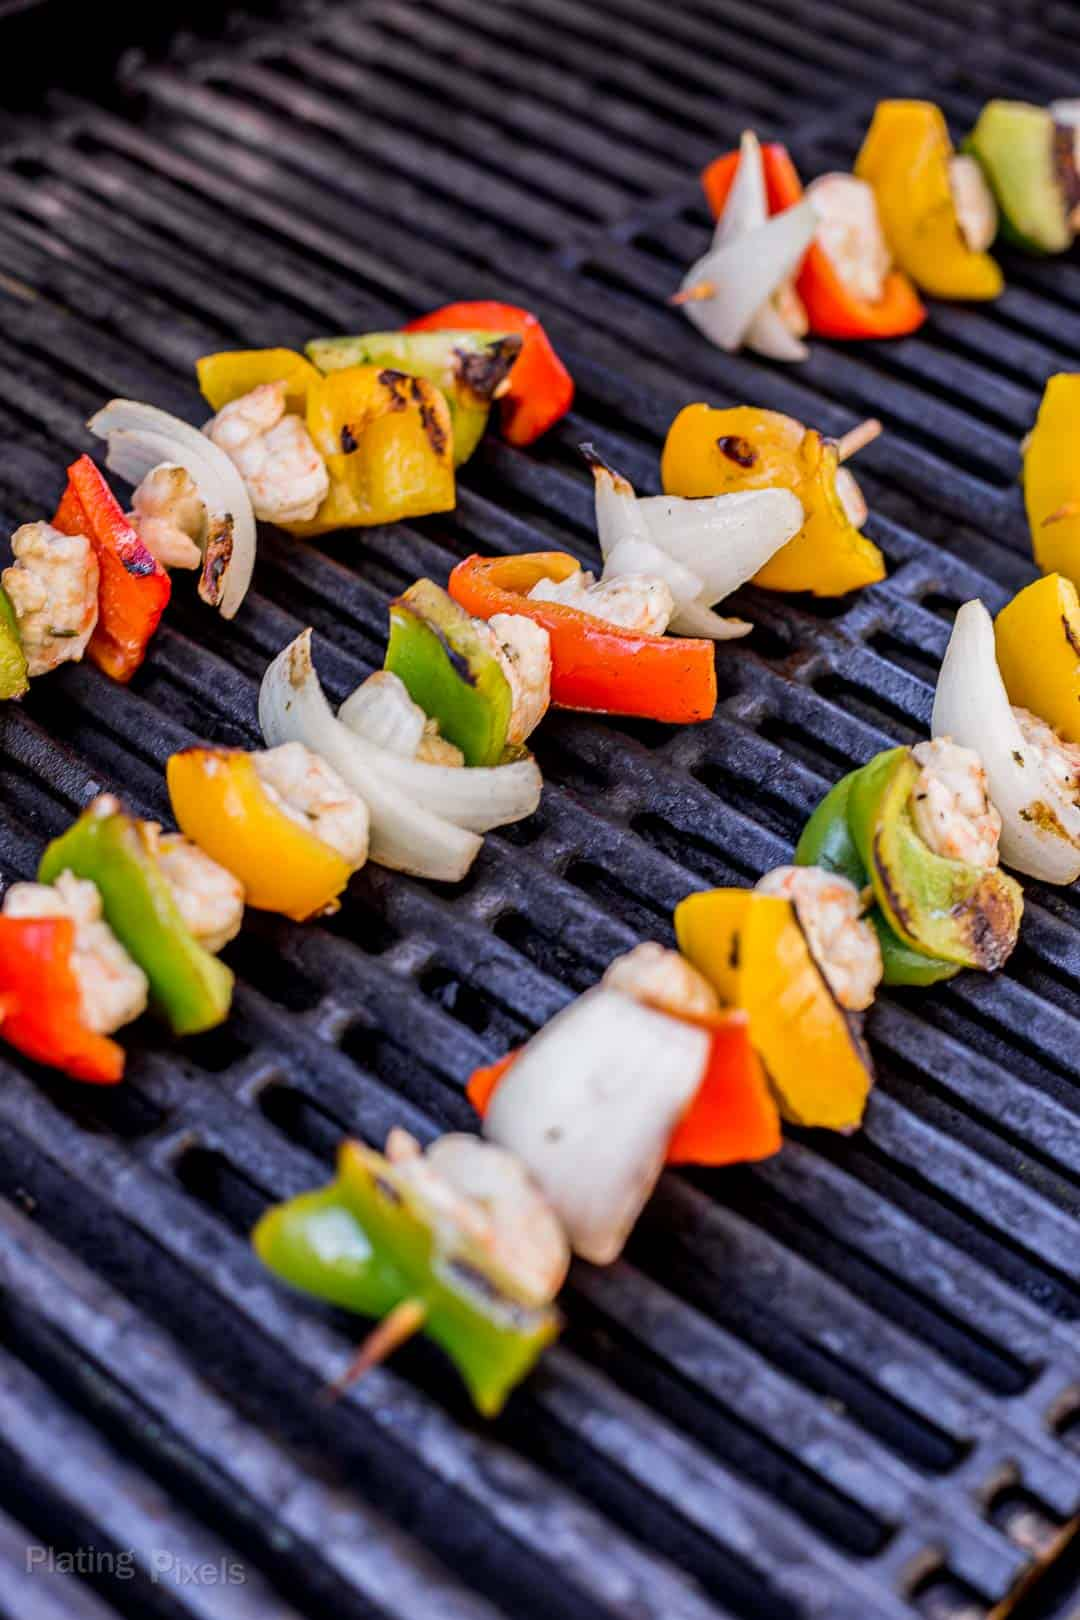 Shrimp Fajitas Skewers cooking on a gas grill